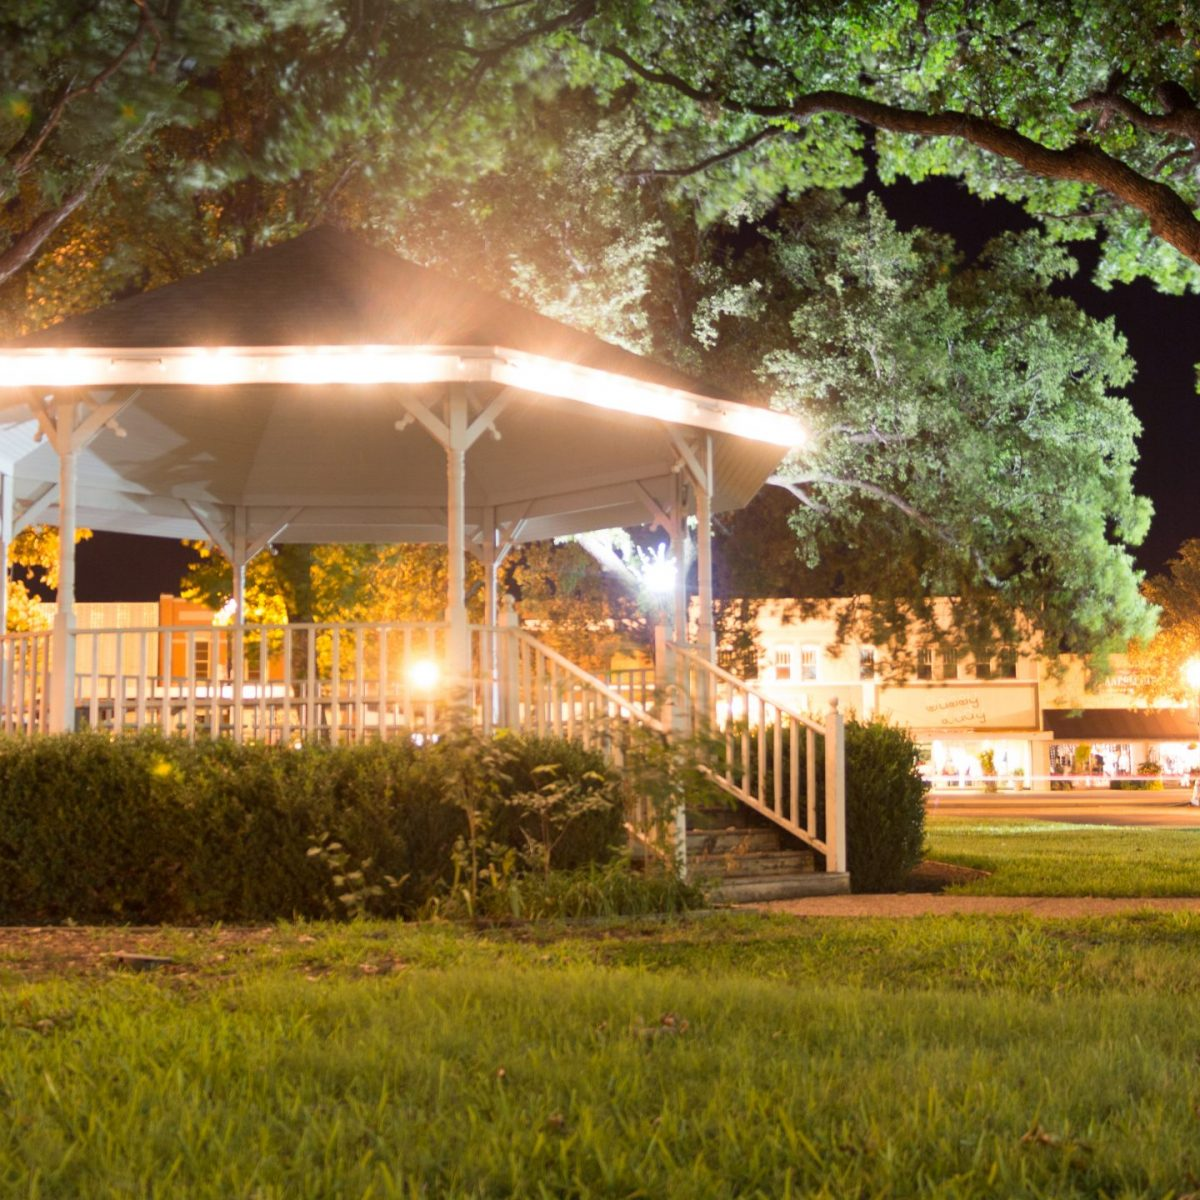 Young County Courthouse Gazebo and Lawn